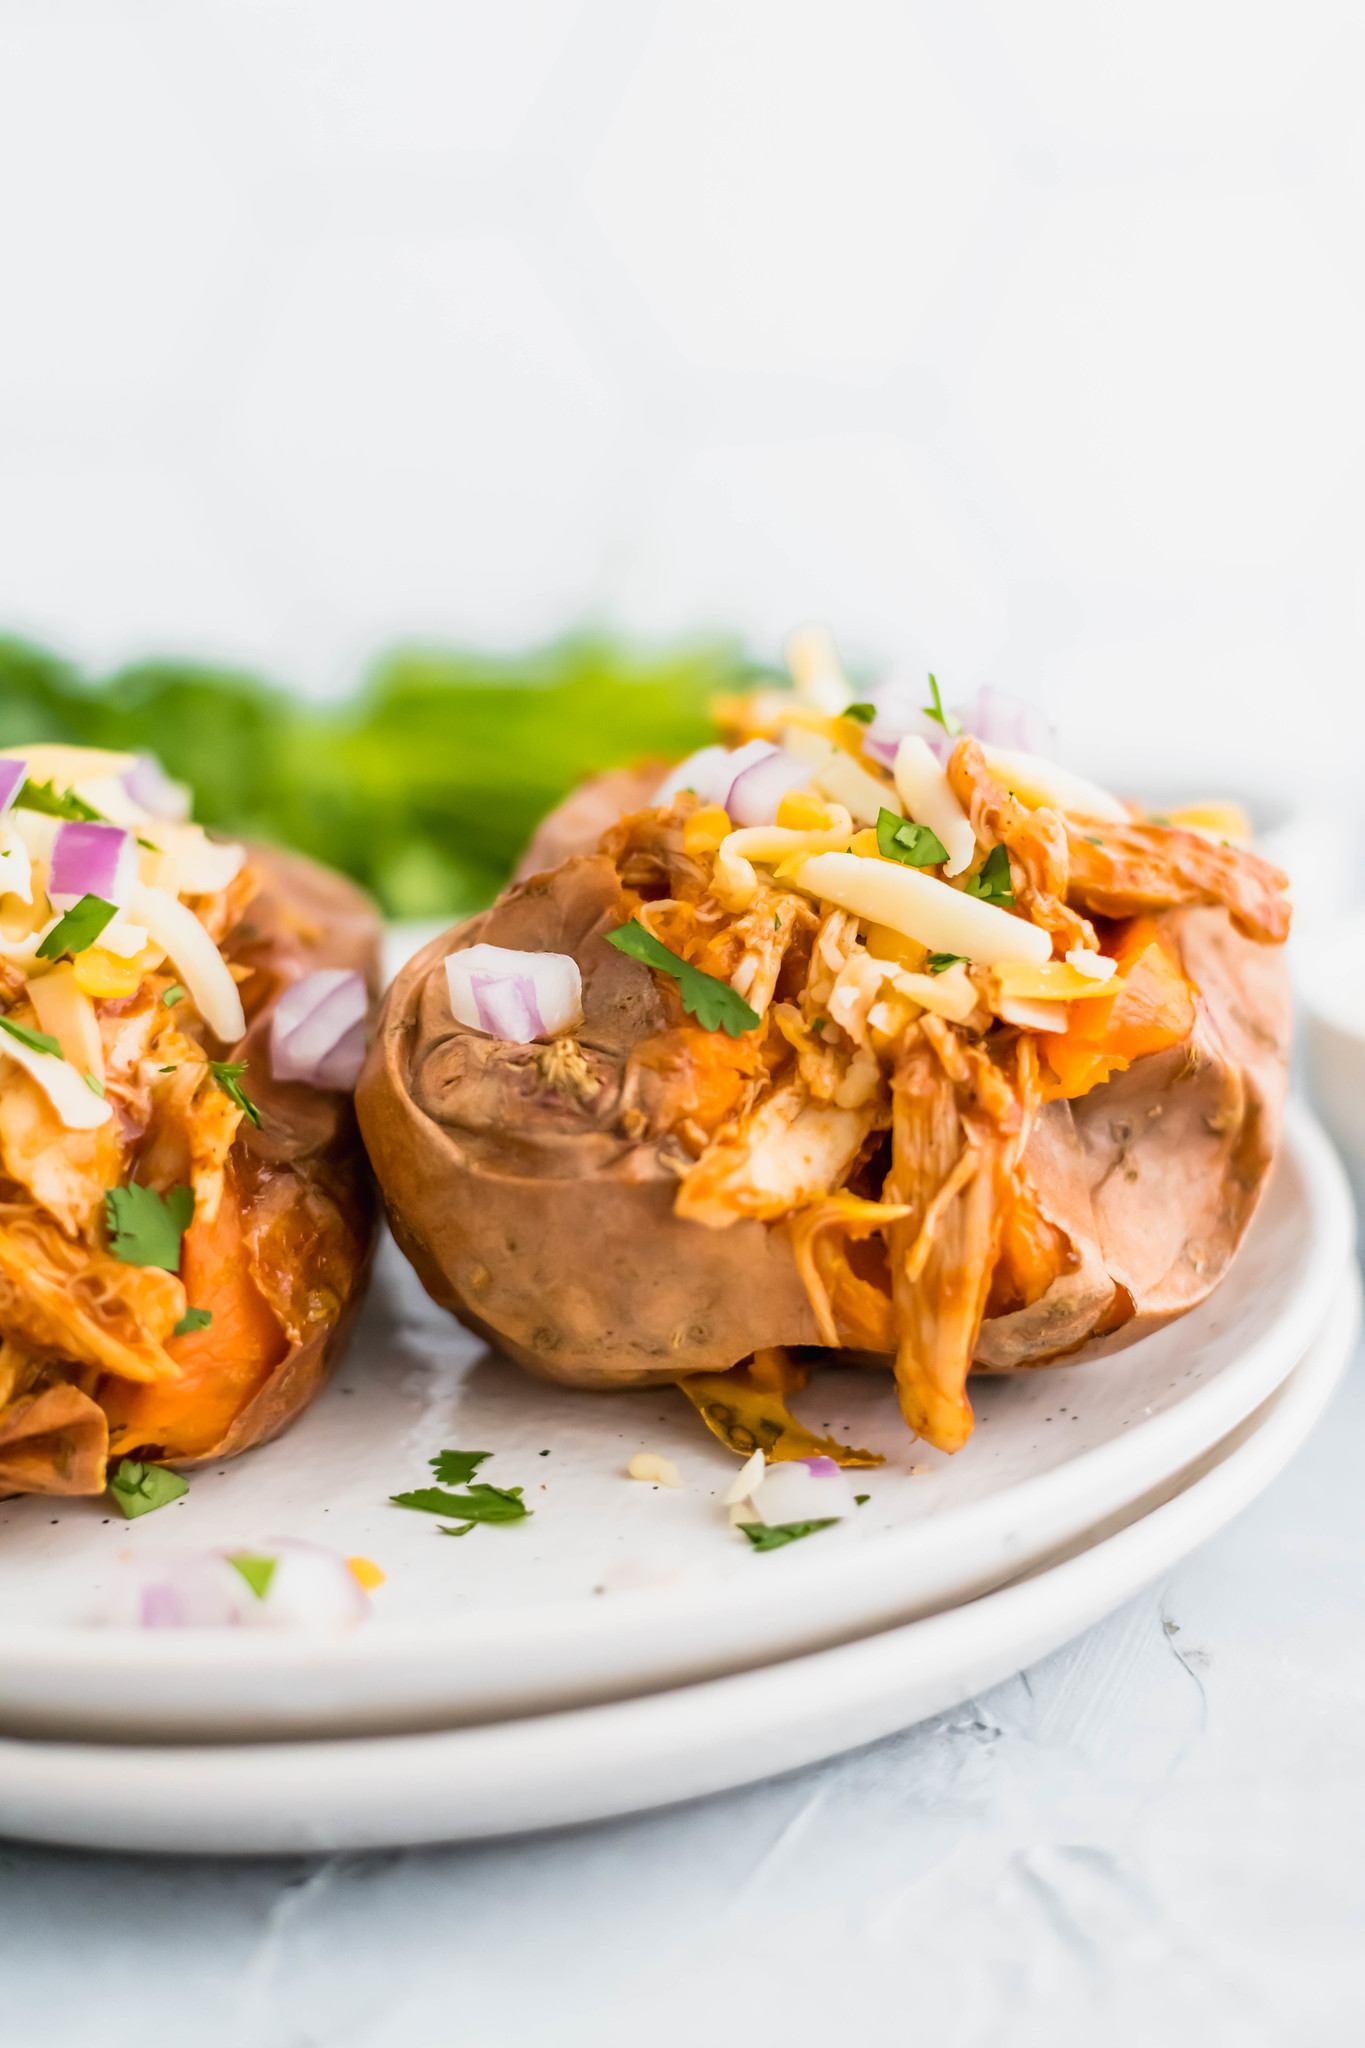 Eating healthy doesn't have to be boring. Especially with these BBQ Chicken Stuffed Sweet Potatoes around. Simple to prep and so yummy.